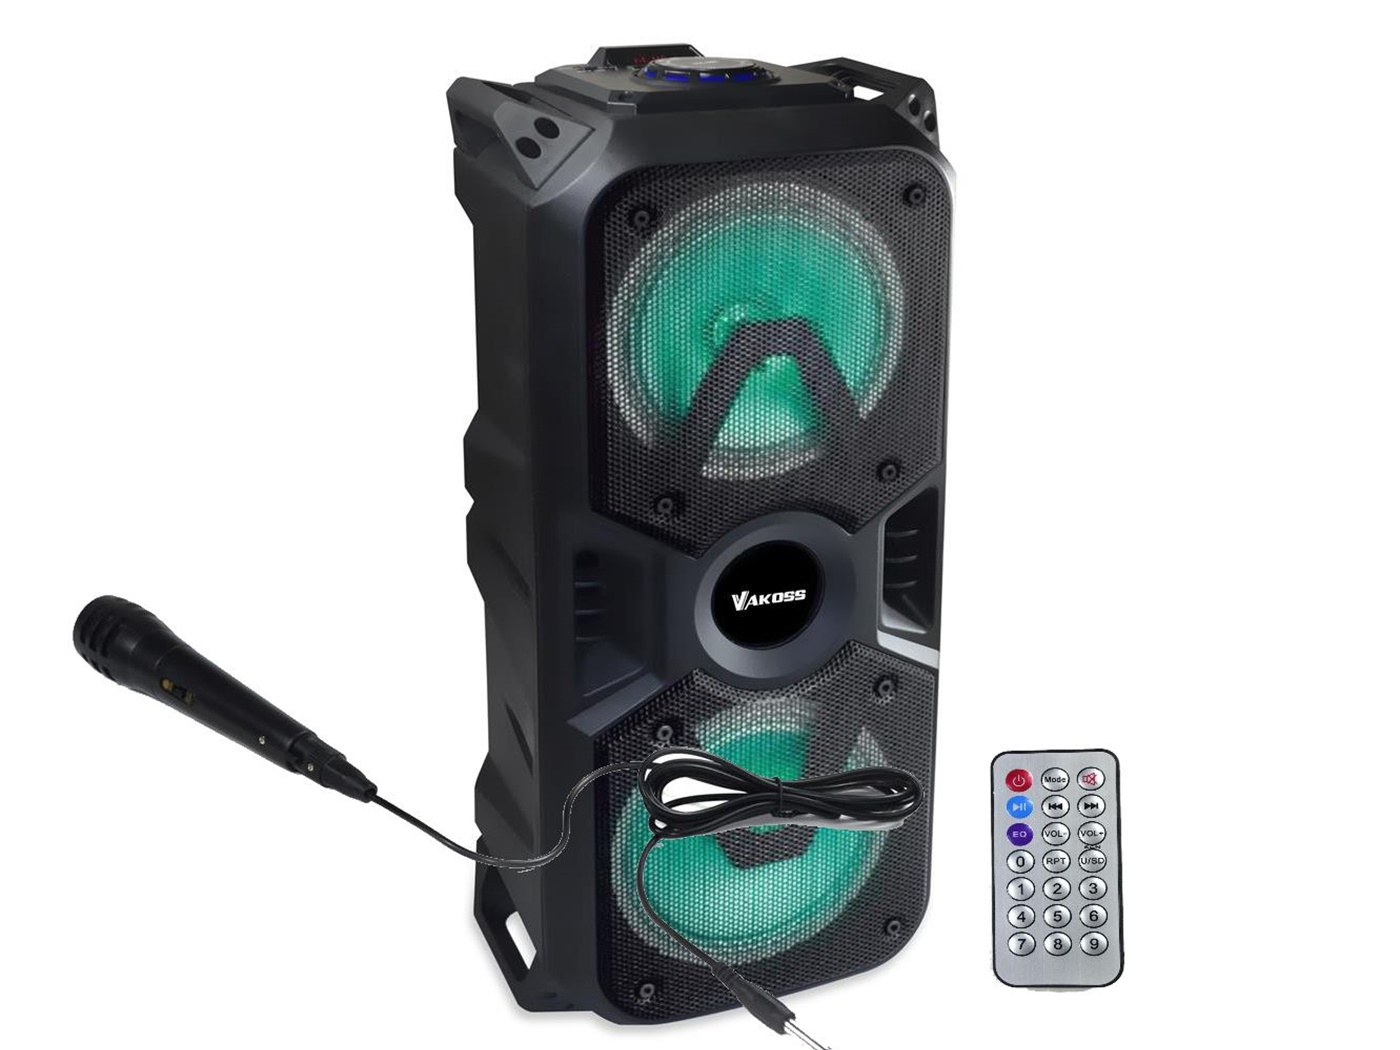 Vakoss karaoke audio SP-2931BK